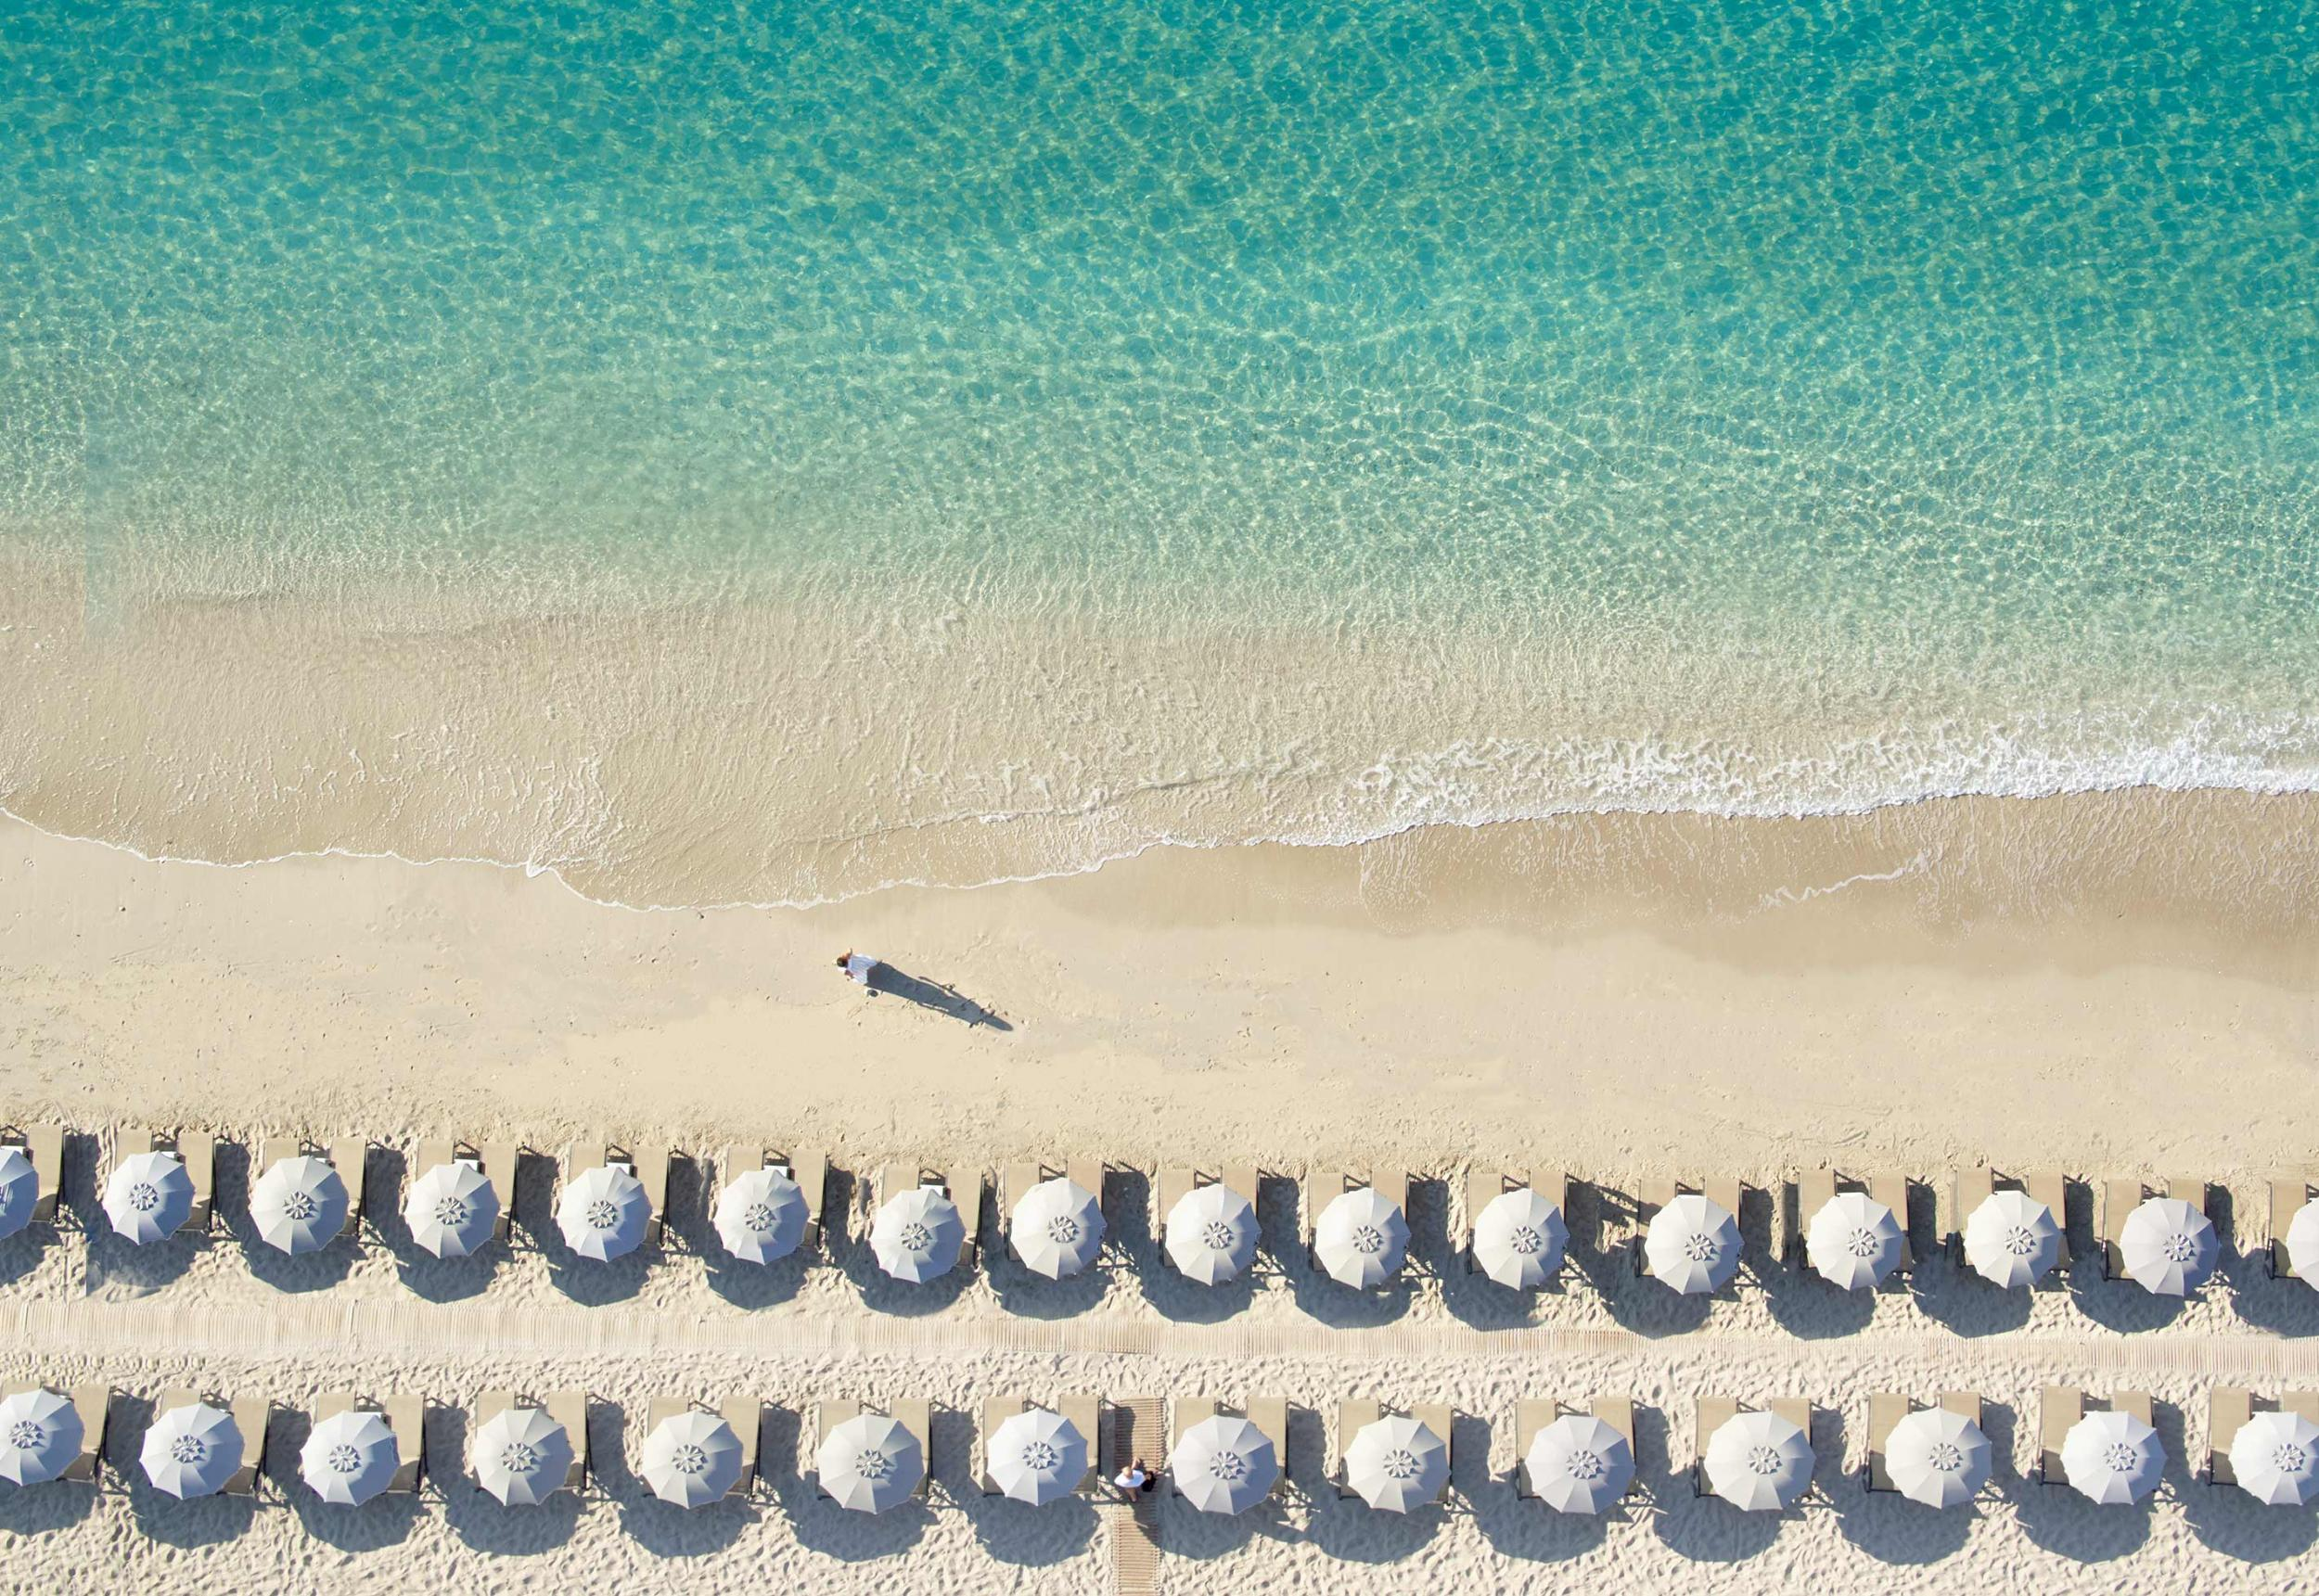 aerial view of Parga Beach, woman walking on the beach, umbrellas, tourquois water